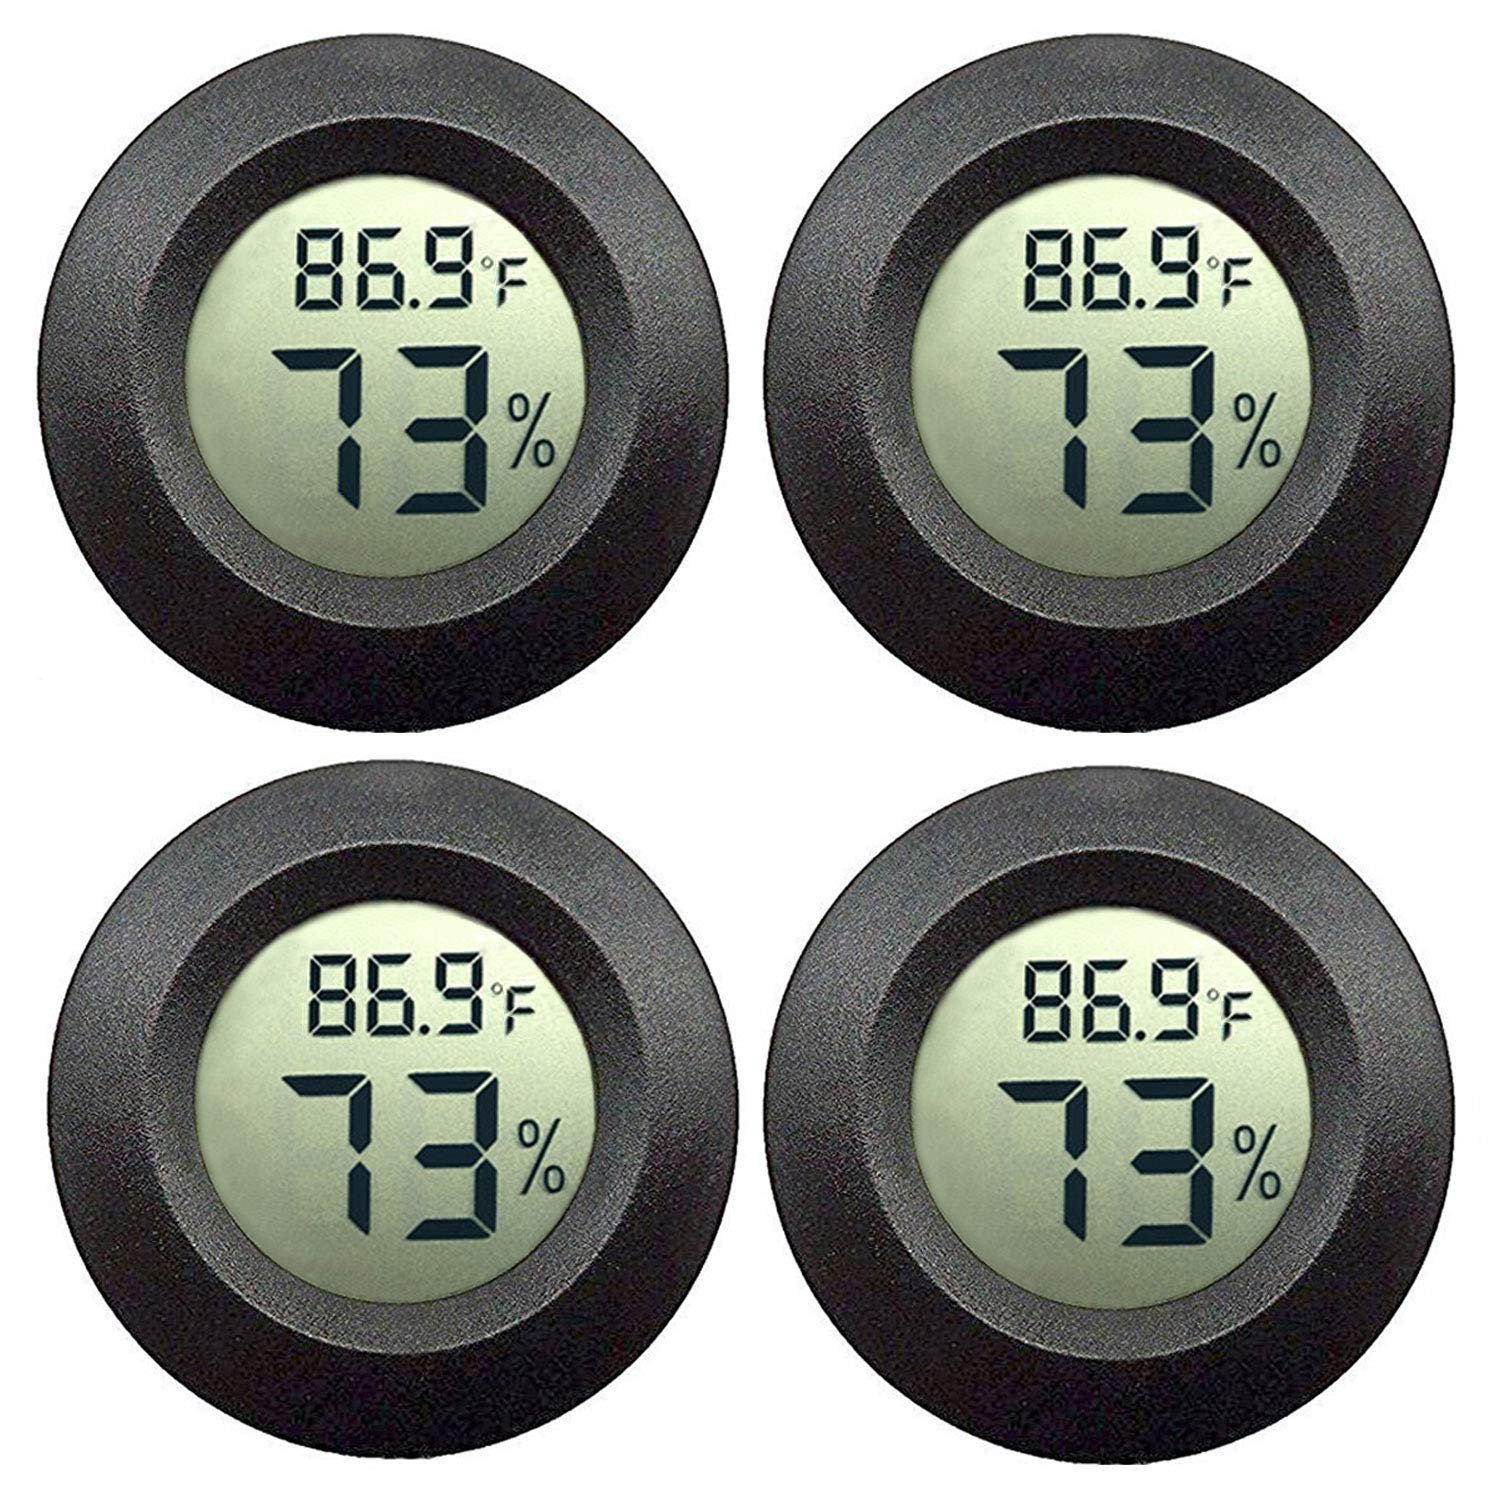 JEDEW 4-Pack Mini Hygrometer Thermometer Digital LCD Monitor Indoor Outdoor Humidity Meter Gauge for Humidifiers Dehumidifiers Greenhouse Basement Babyroom Fahrenheit or Celsius (Black-4 Pack) by JEDEW